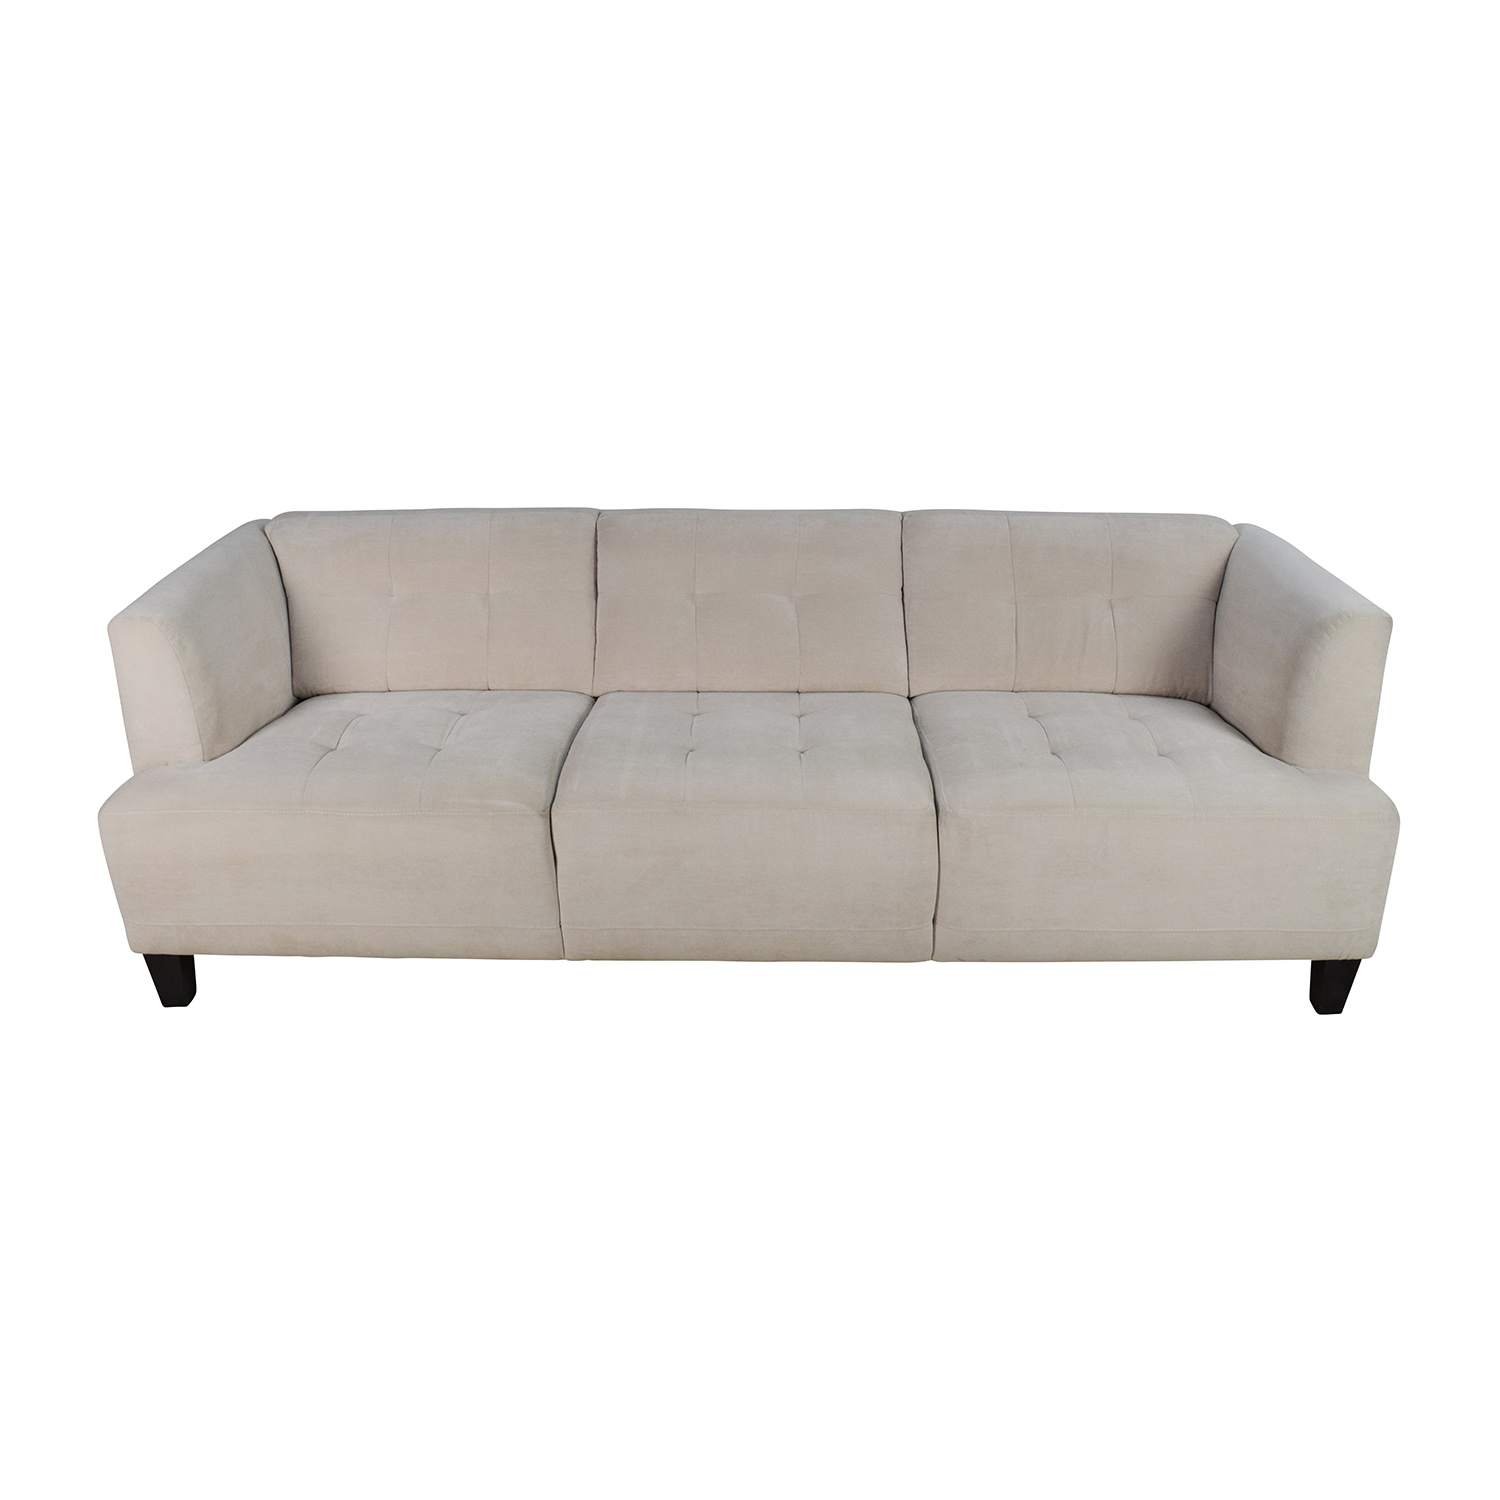 macy s spencer sofa reviews covers leather couches macys tufted jazmin fabric only at